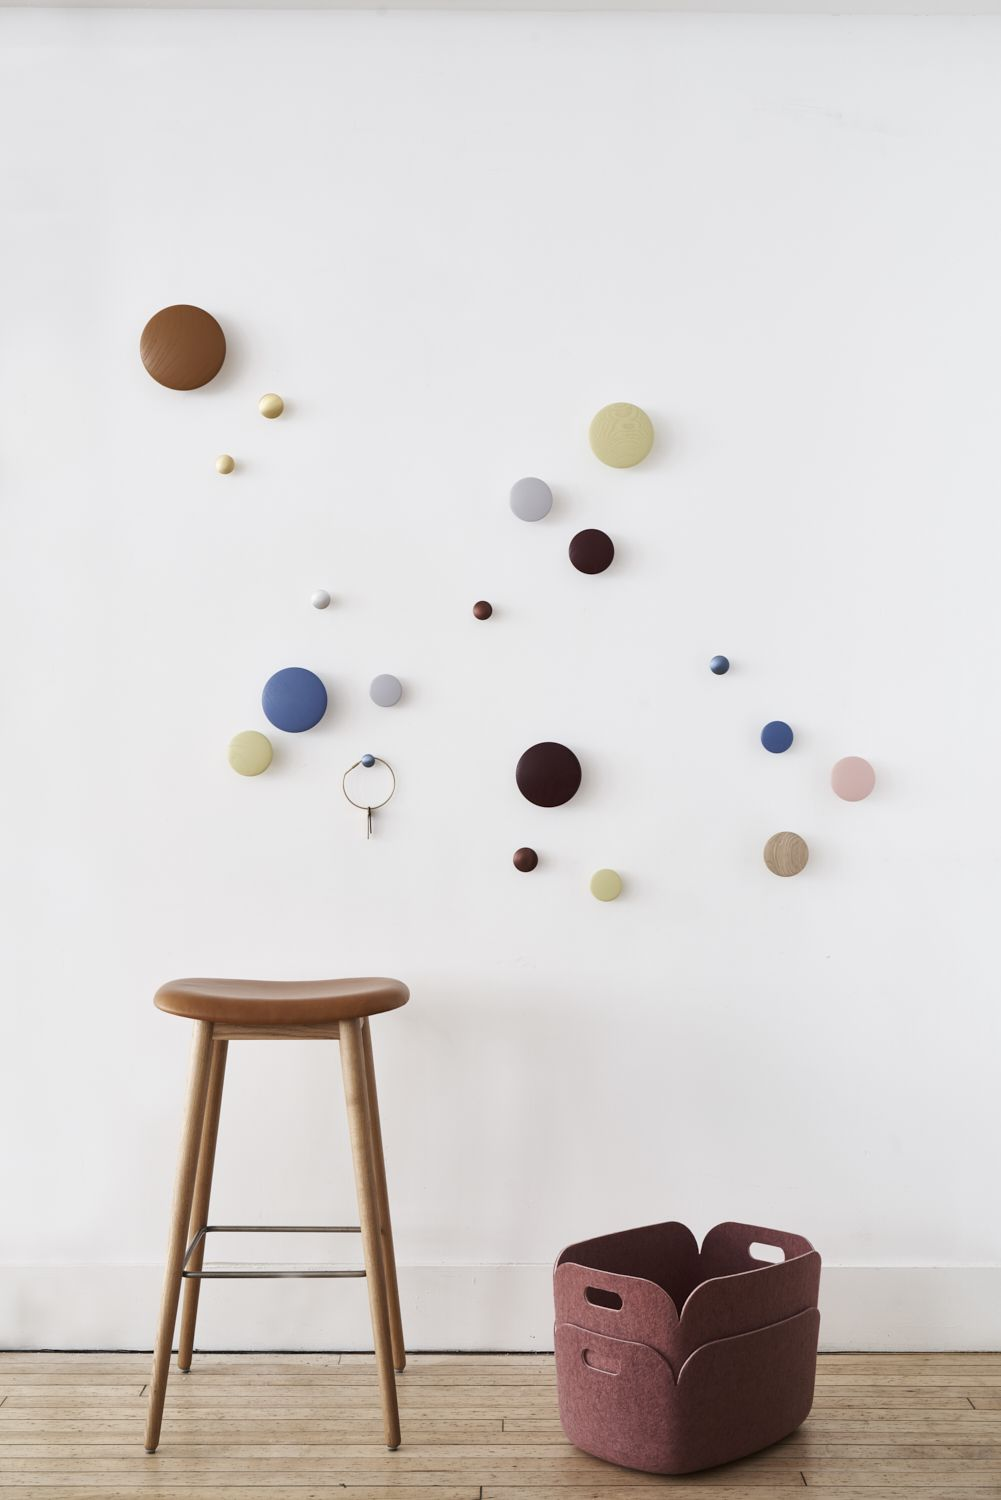 Taking a playful approach to the conventional coat hook, Dots can be arranged in infinite numbers and combinations in a variety of sizes, as exemplified here at NYCxDesign in New York. #muuto #newperspectives #scandinaviandesign #interior #interiordesign #deco #homedecor #nycxdesign #entreindretning